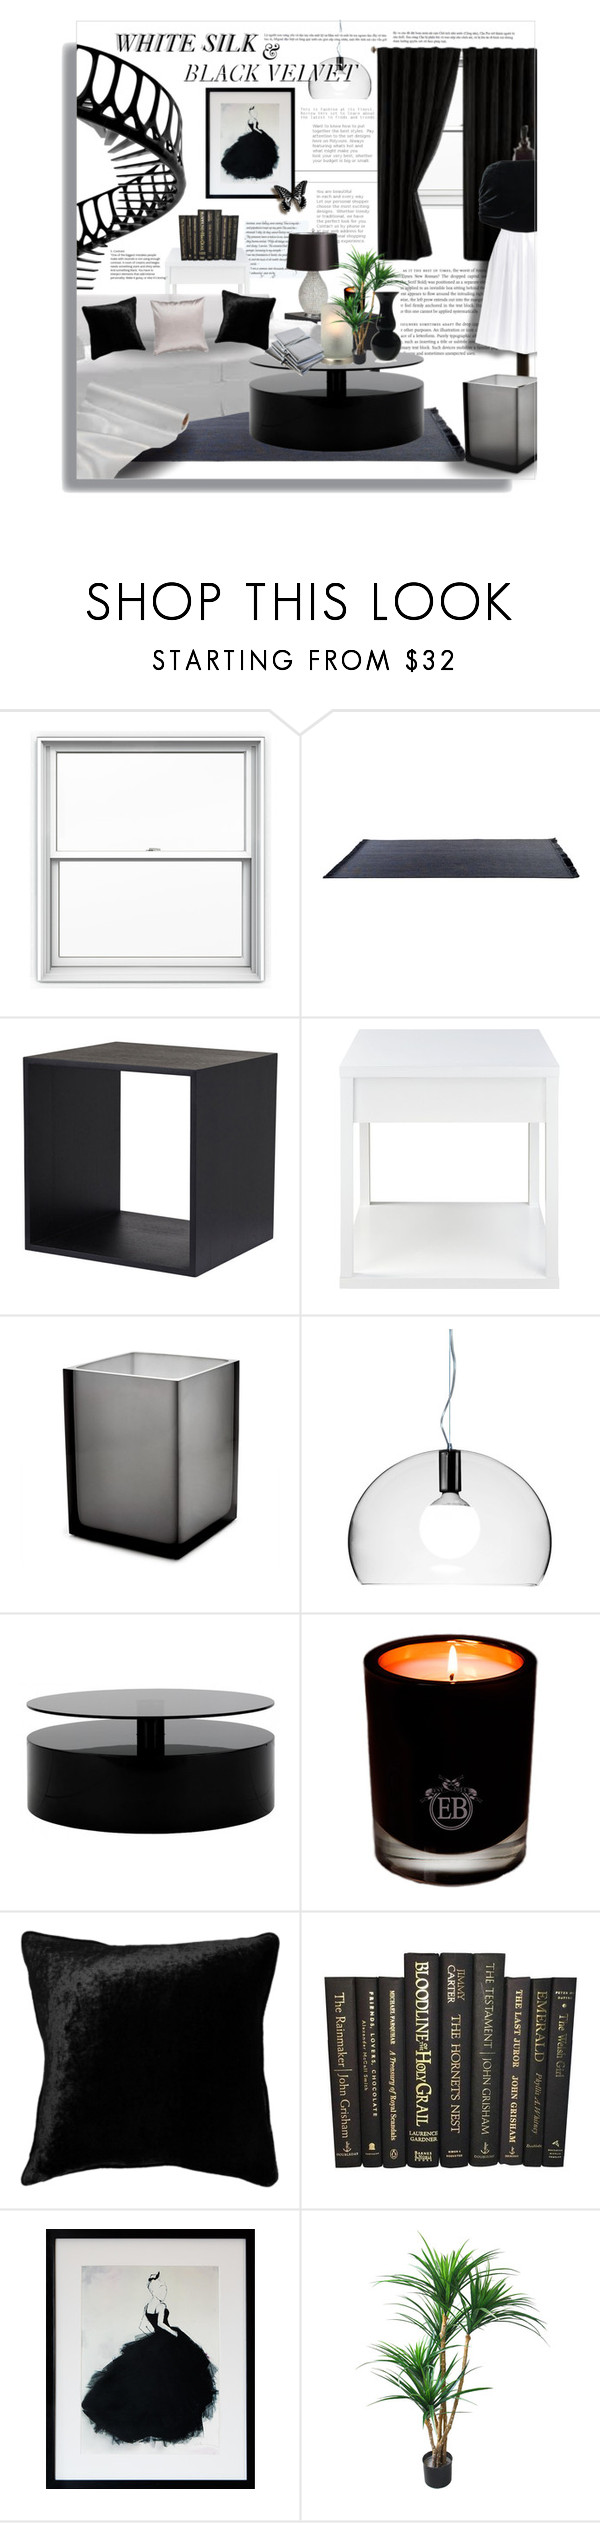 """""""White Silk & Black Velvet"""" by angelflair ❤ liked on Polyvore featuring interior, interiors, interior design, home, home decor, interior decorating, Jonathan Adler, Kartell, EB Florals and Ziggy"""